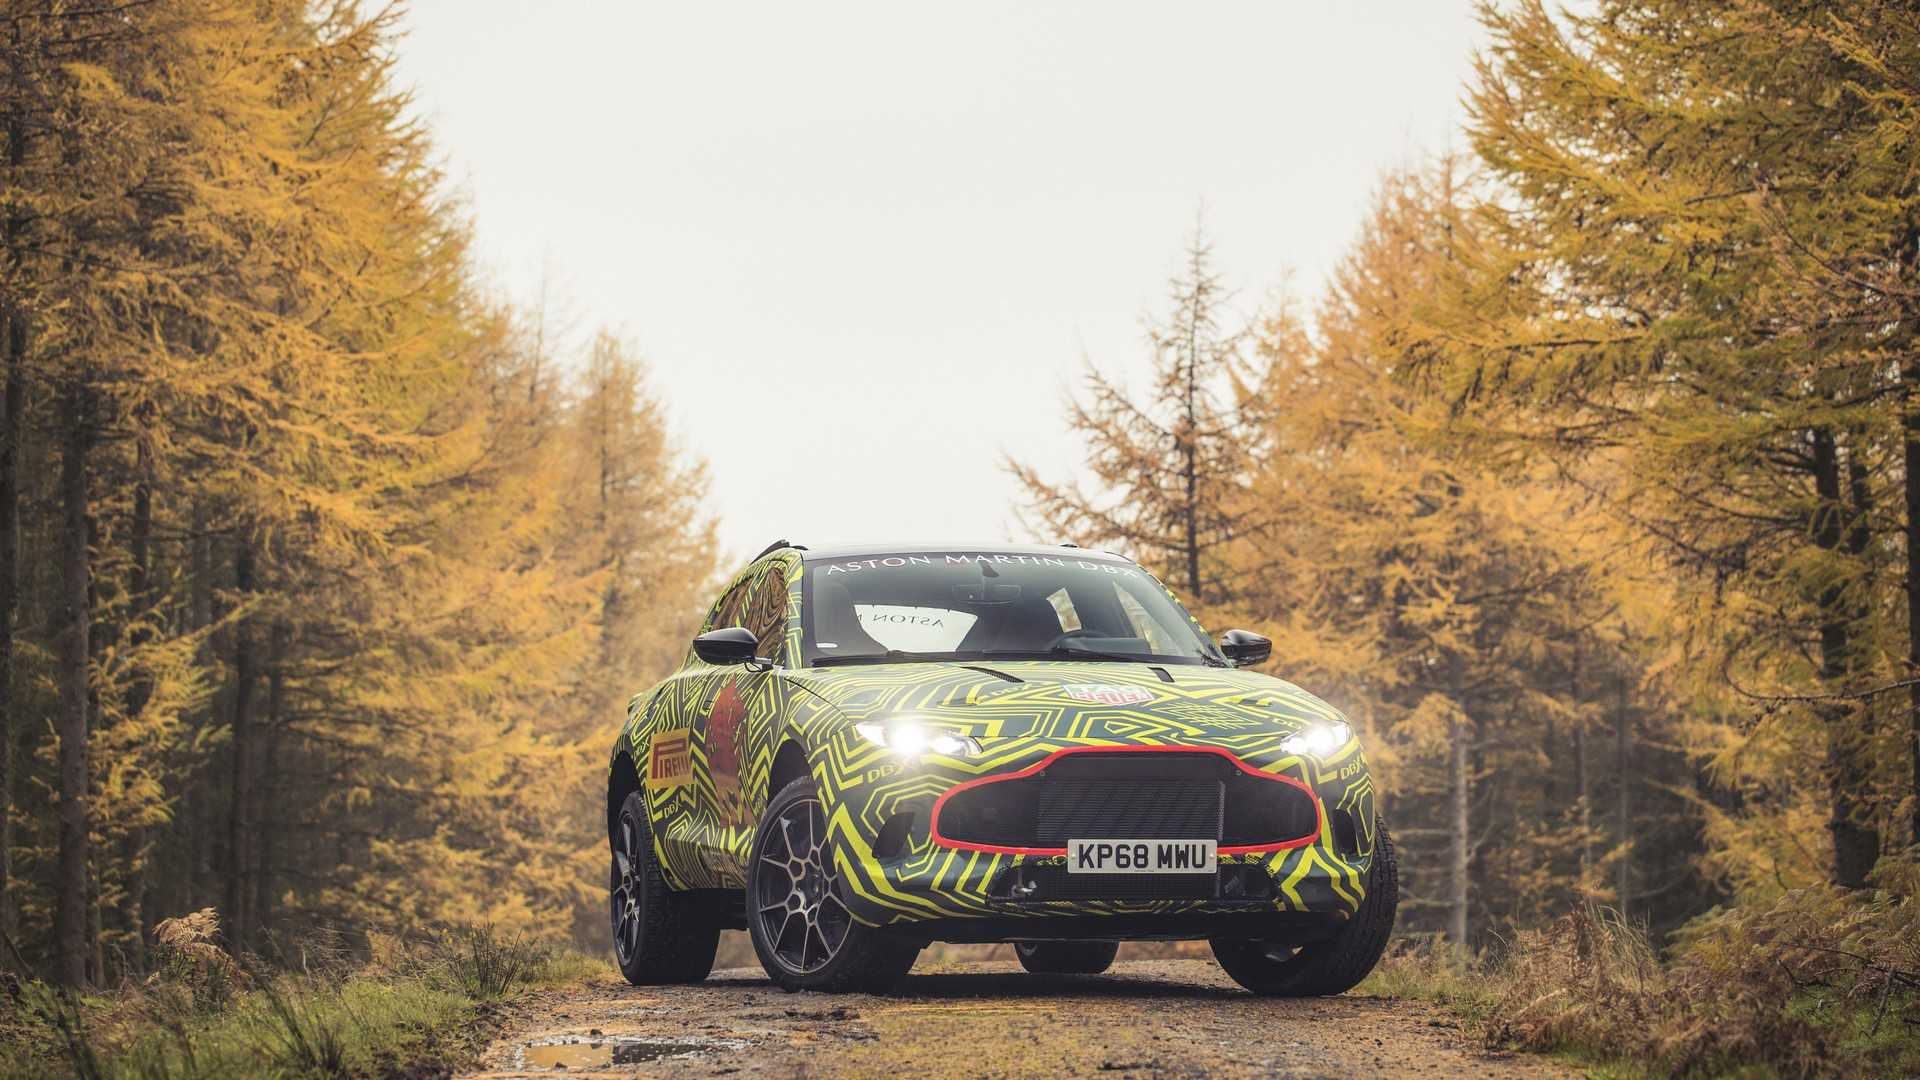 Aston Martin DBX unveiled: First look at the new luxury SUV